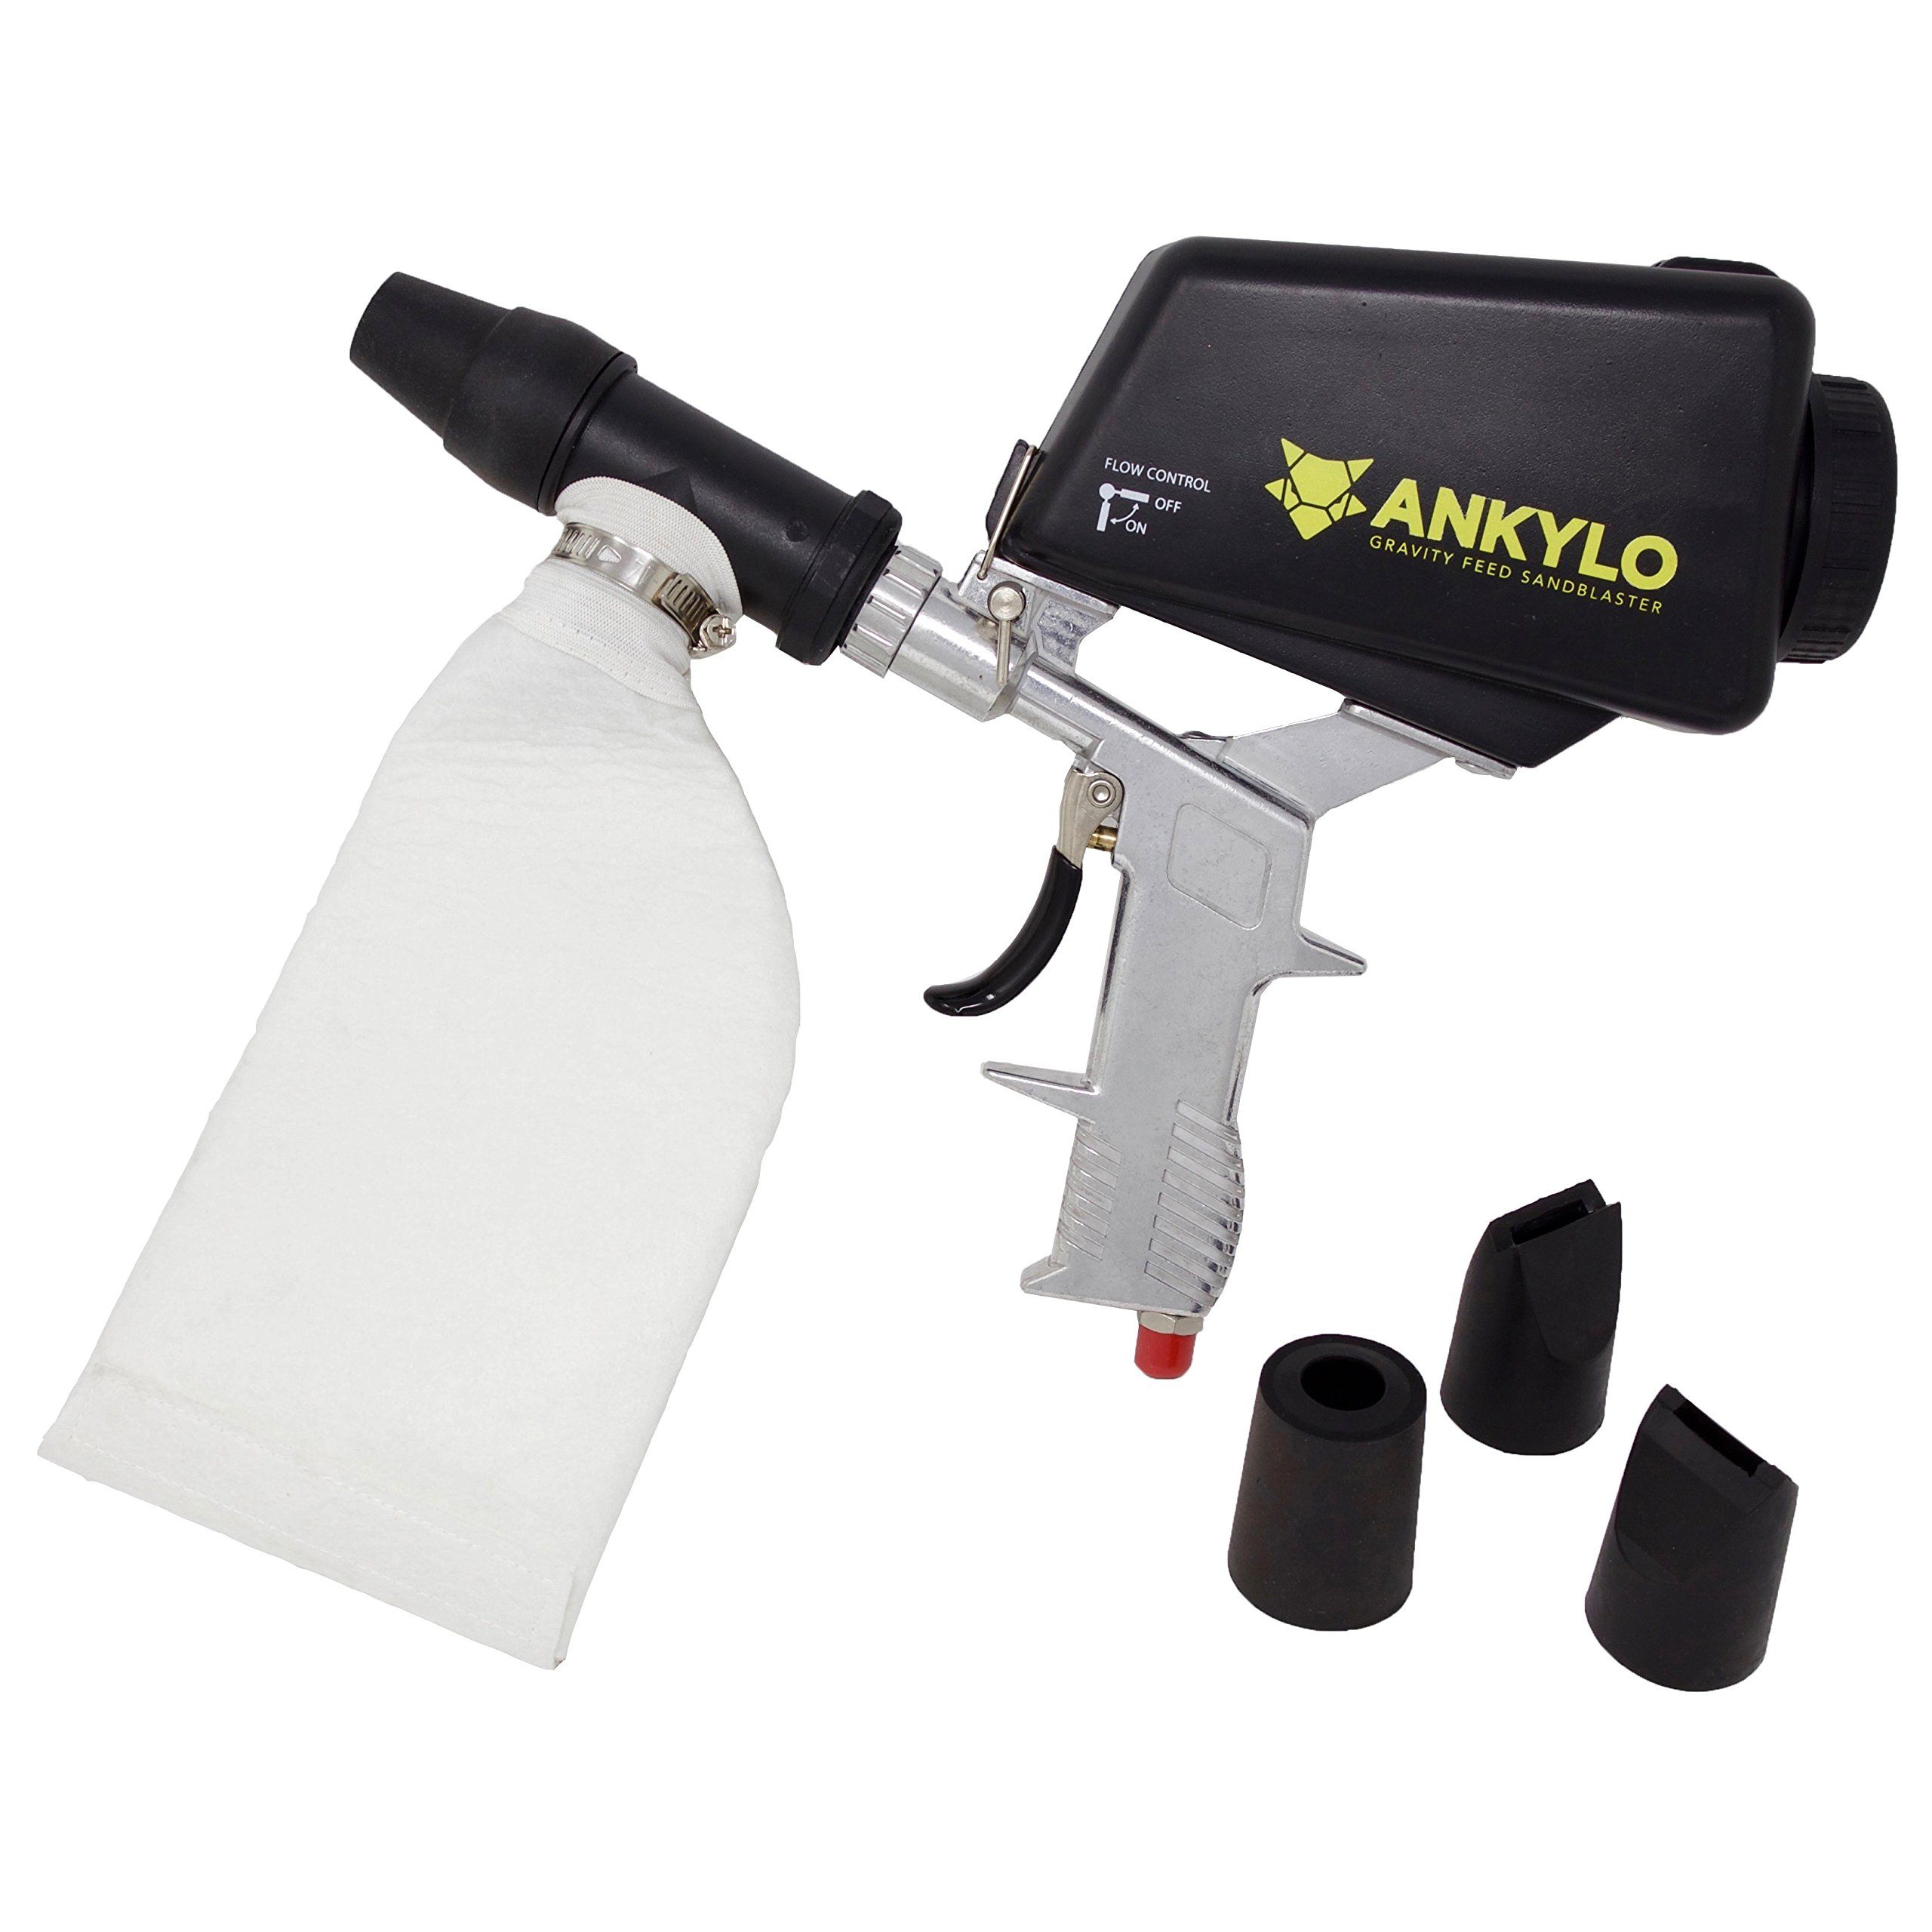 Gravity Sandblaster Gun - Durable Metal - Handheld and Portable with bonus Spot Blasting Kit - Remove Rust & Paint, Clean Tools & Parts, Create Art by ANKYLO Tools (Image #2)